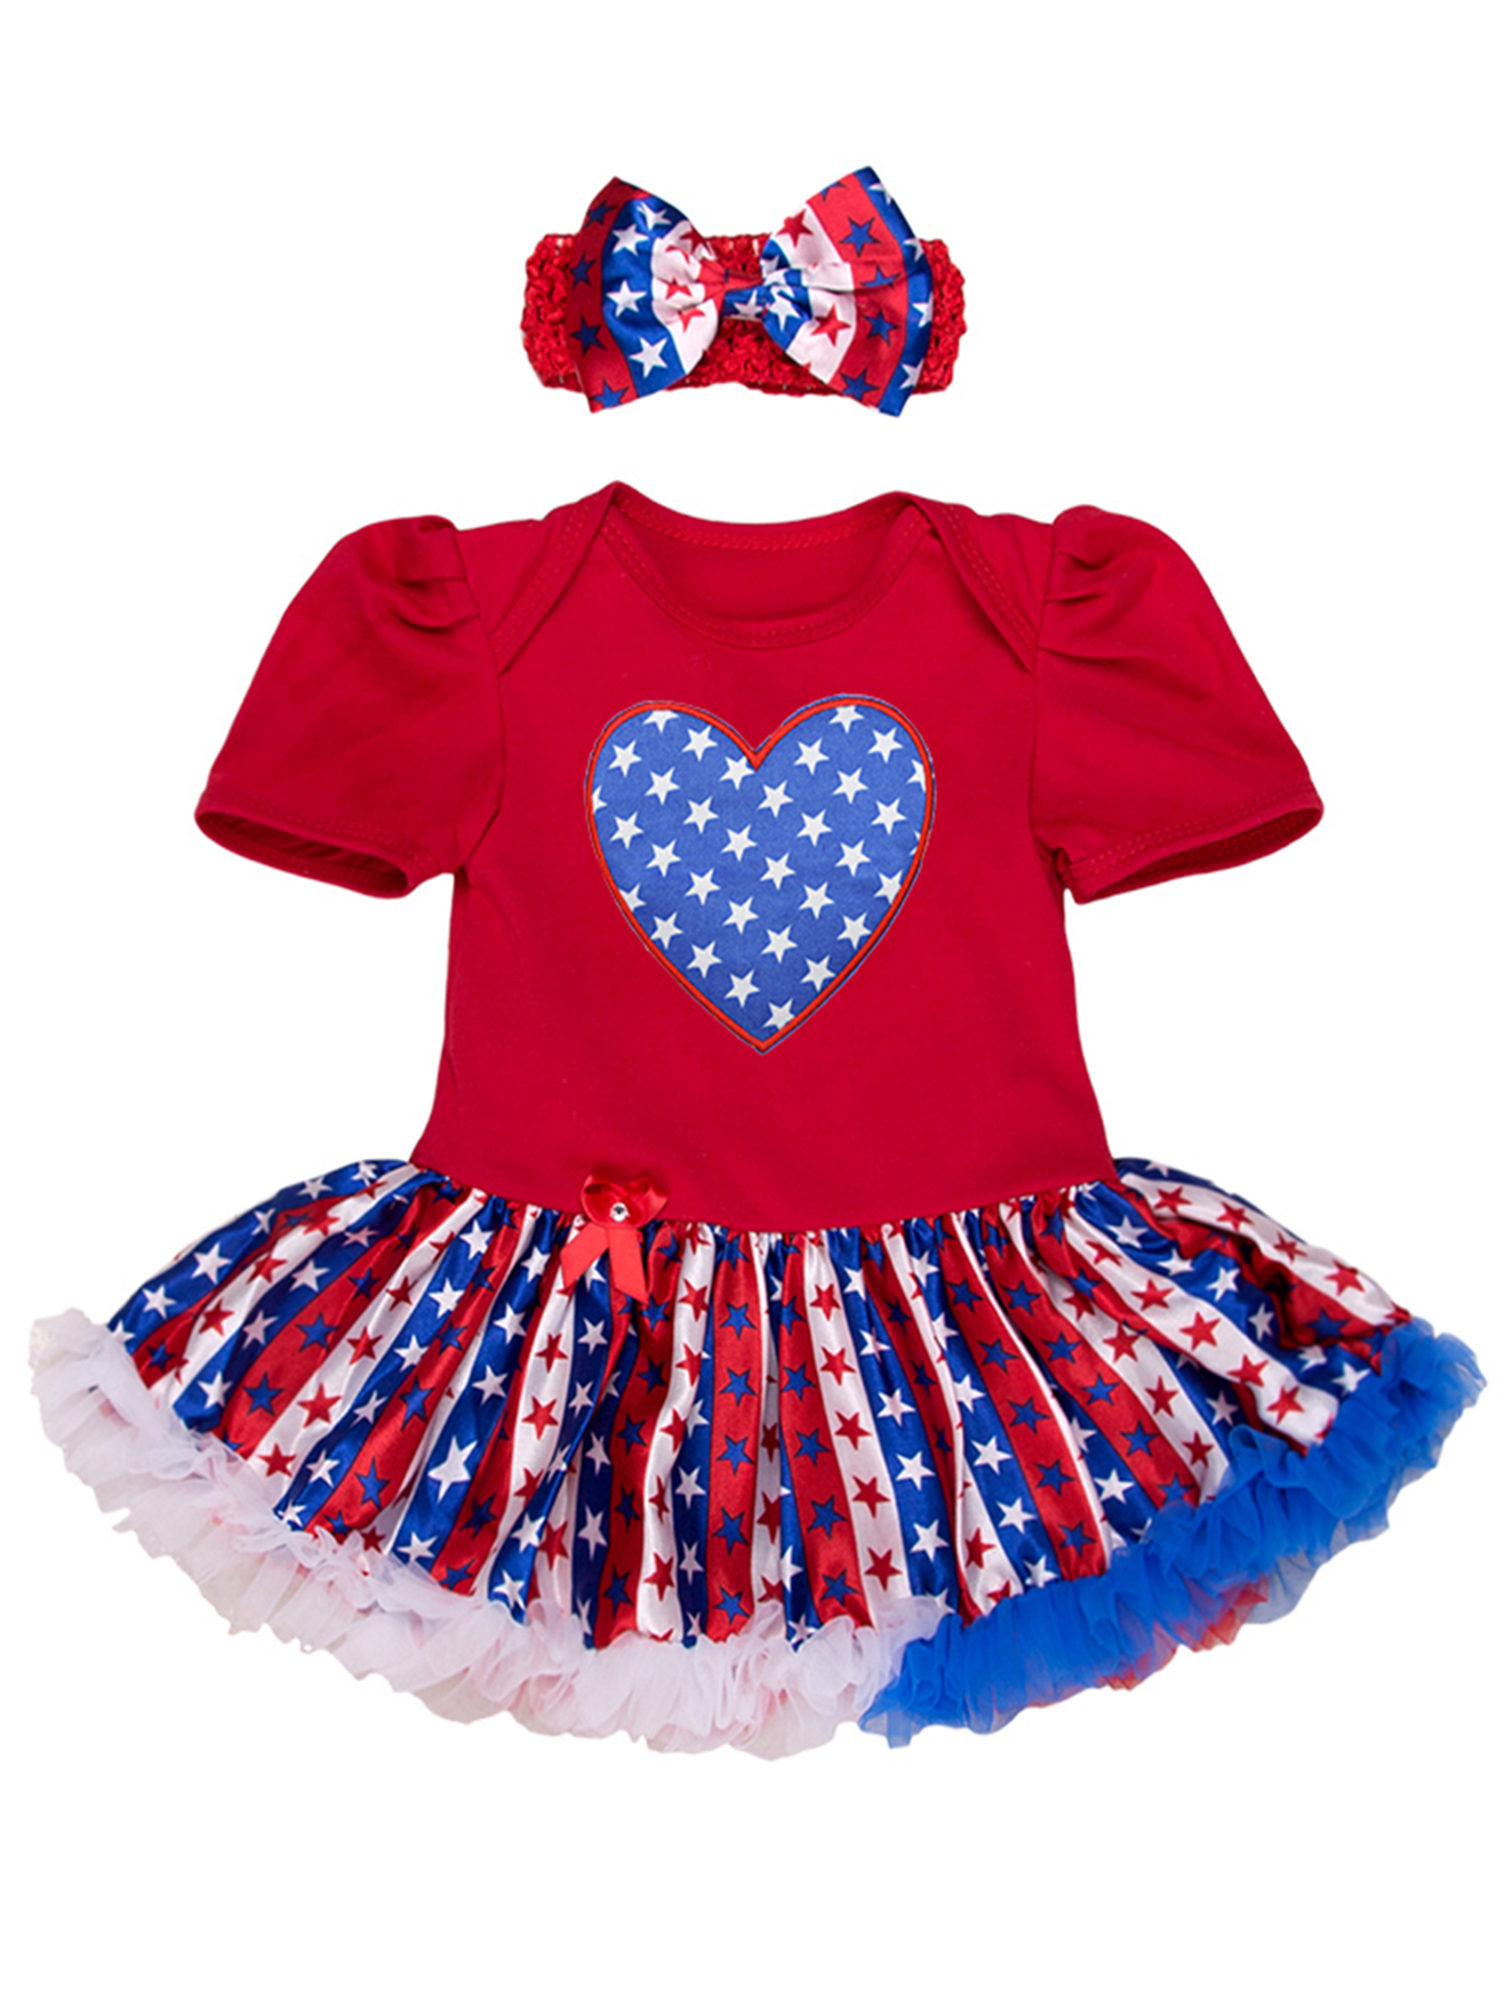 Flag Day Baby Jumpsuit 4th of July Clothes,Toddler Infant Girls Ruffled Hair Band Romper Outfits Set 6-24 Months